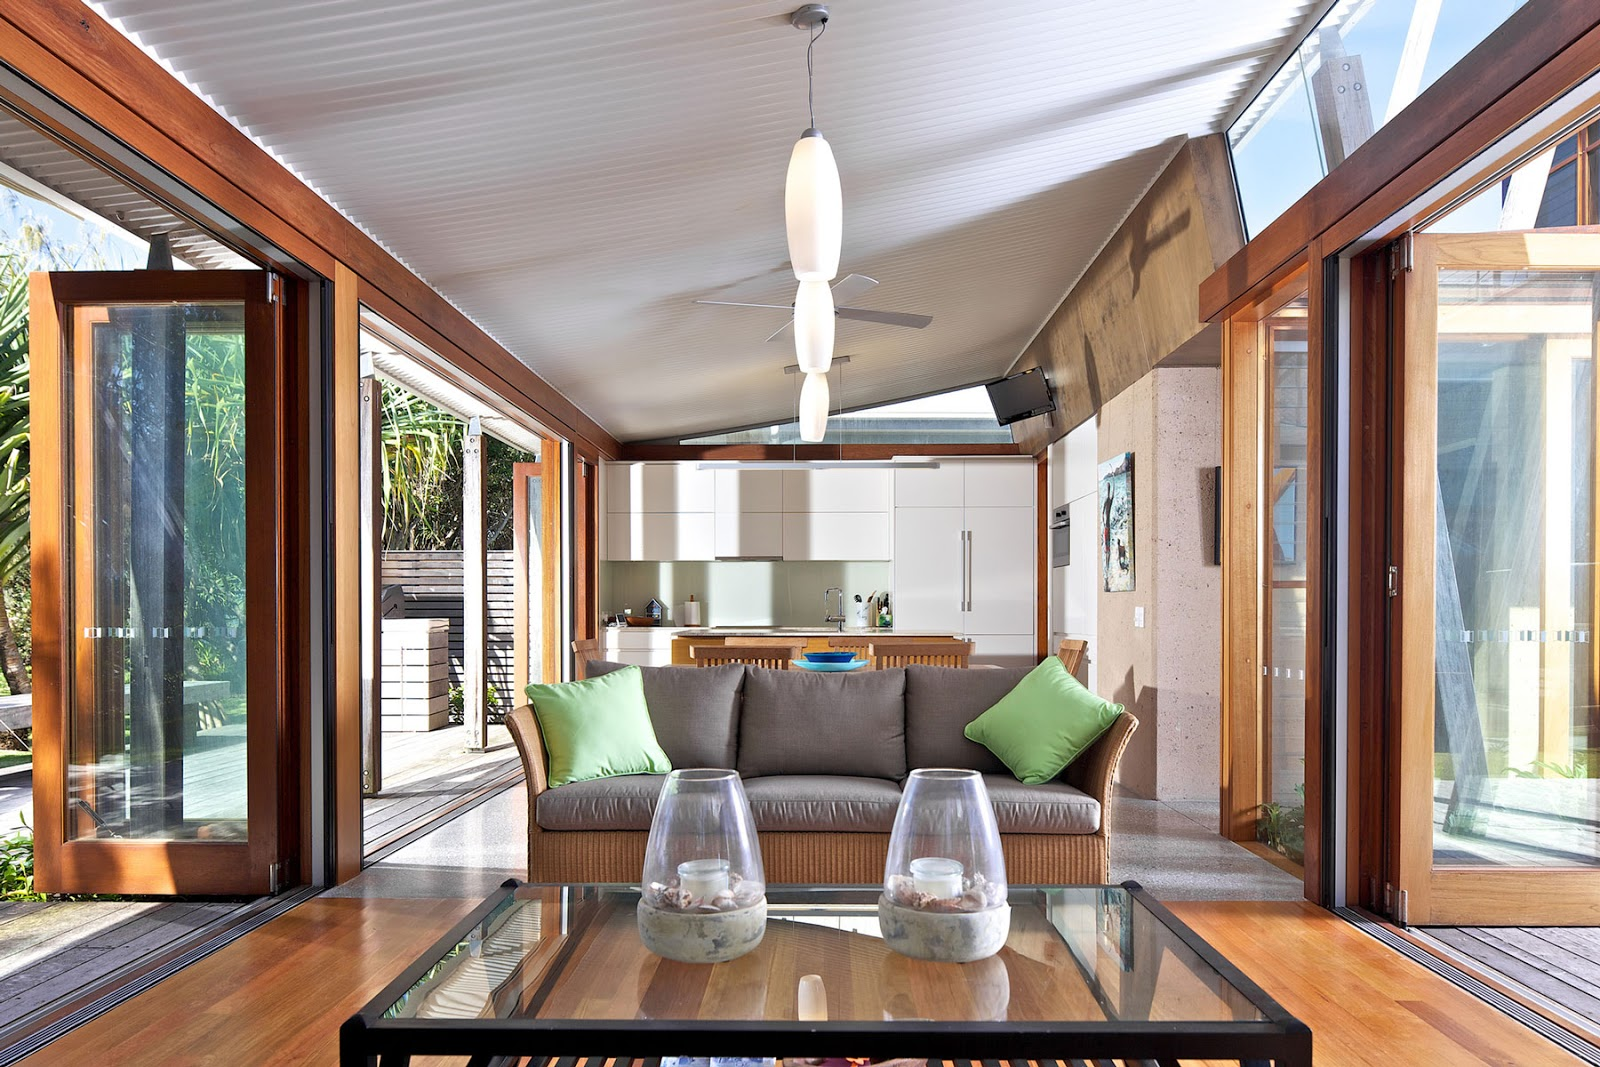 Home Decoration Inspiration Vacation Beach House With